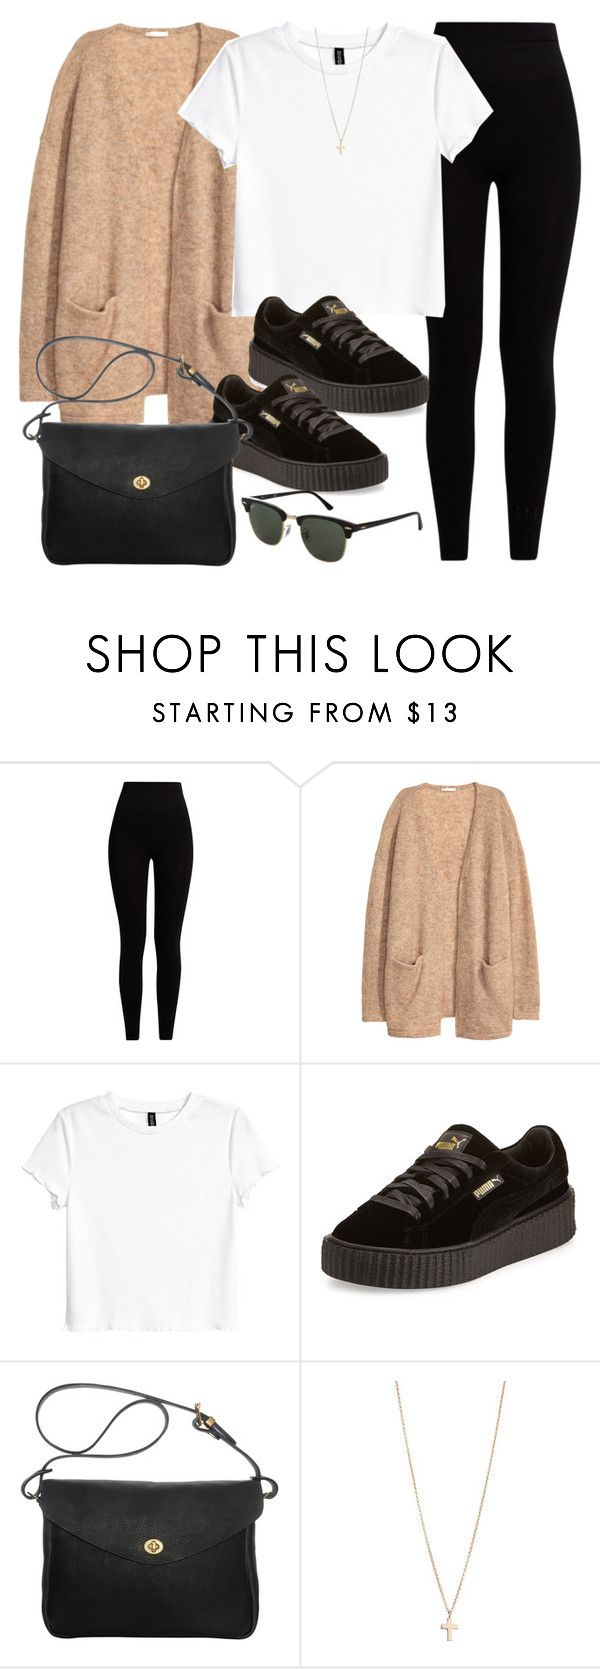 """""""Sin título #11943"""" by vany-alvarado ❤ liked on Polyvore featuring Pepper & Mayne, H&M, Puma, Mimi Berry, Minor Obsessions and Topshop"""